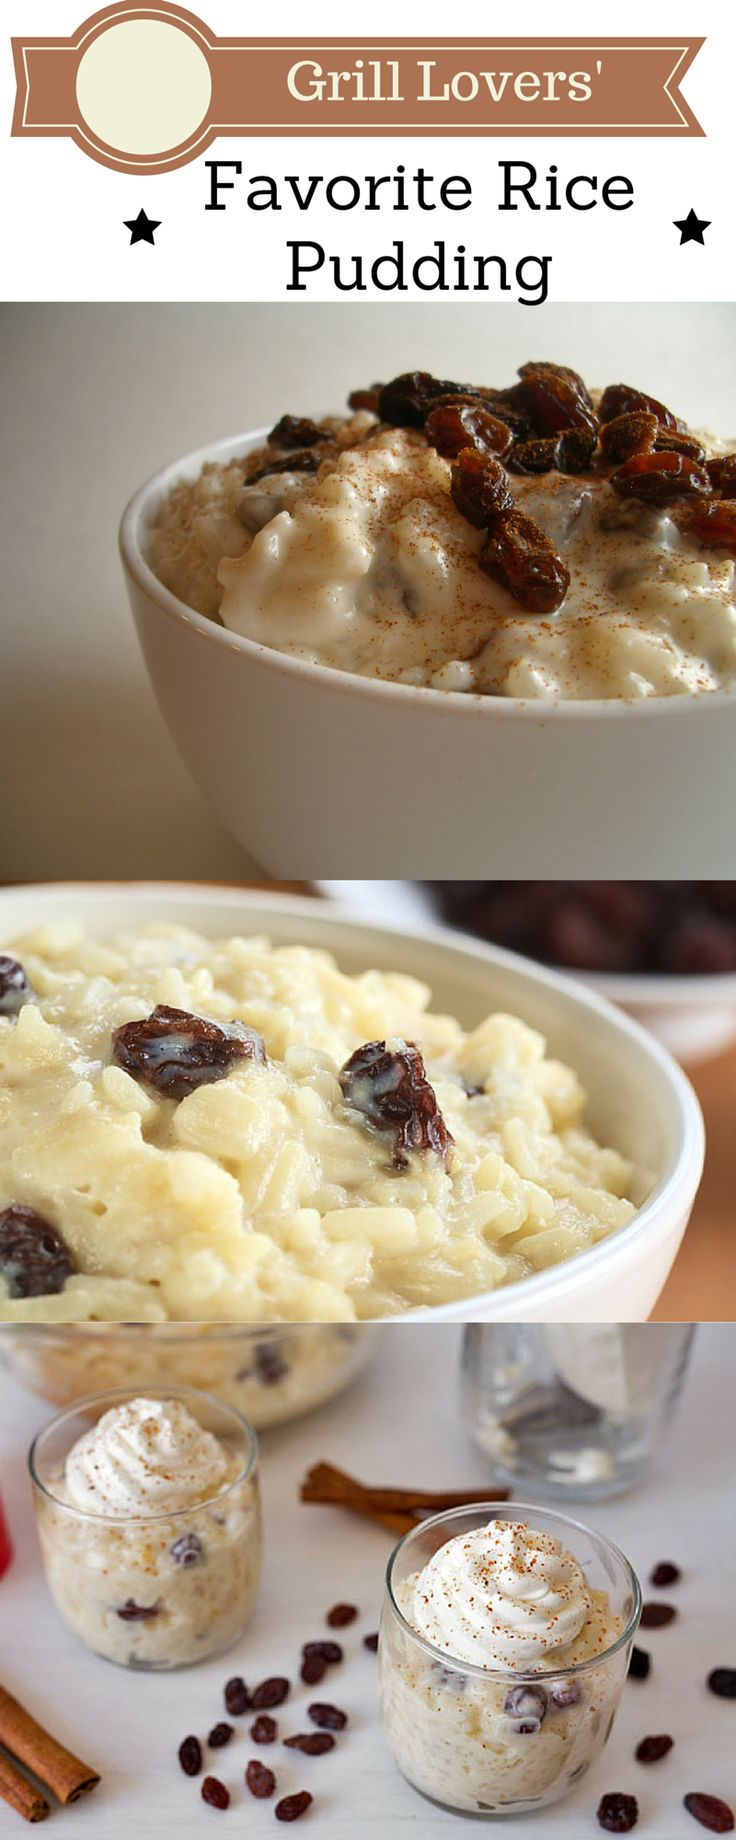 Grill Lovers' Favorite Rice Pudding Recipe   #recipes #foodporn #foodie